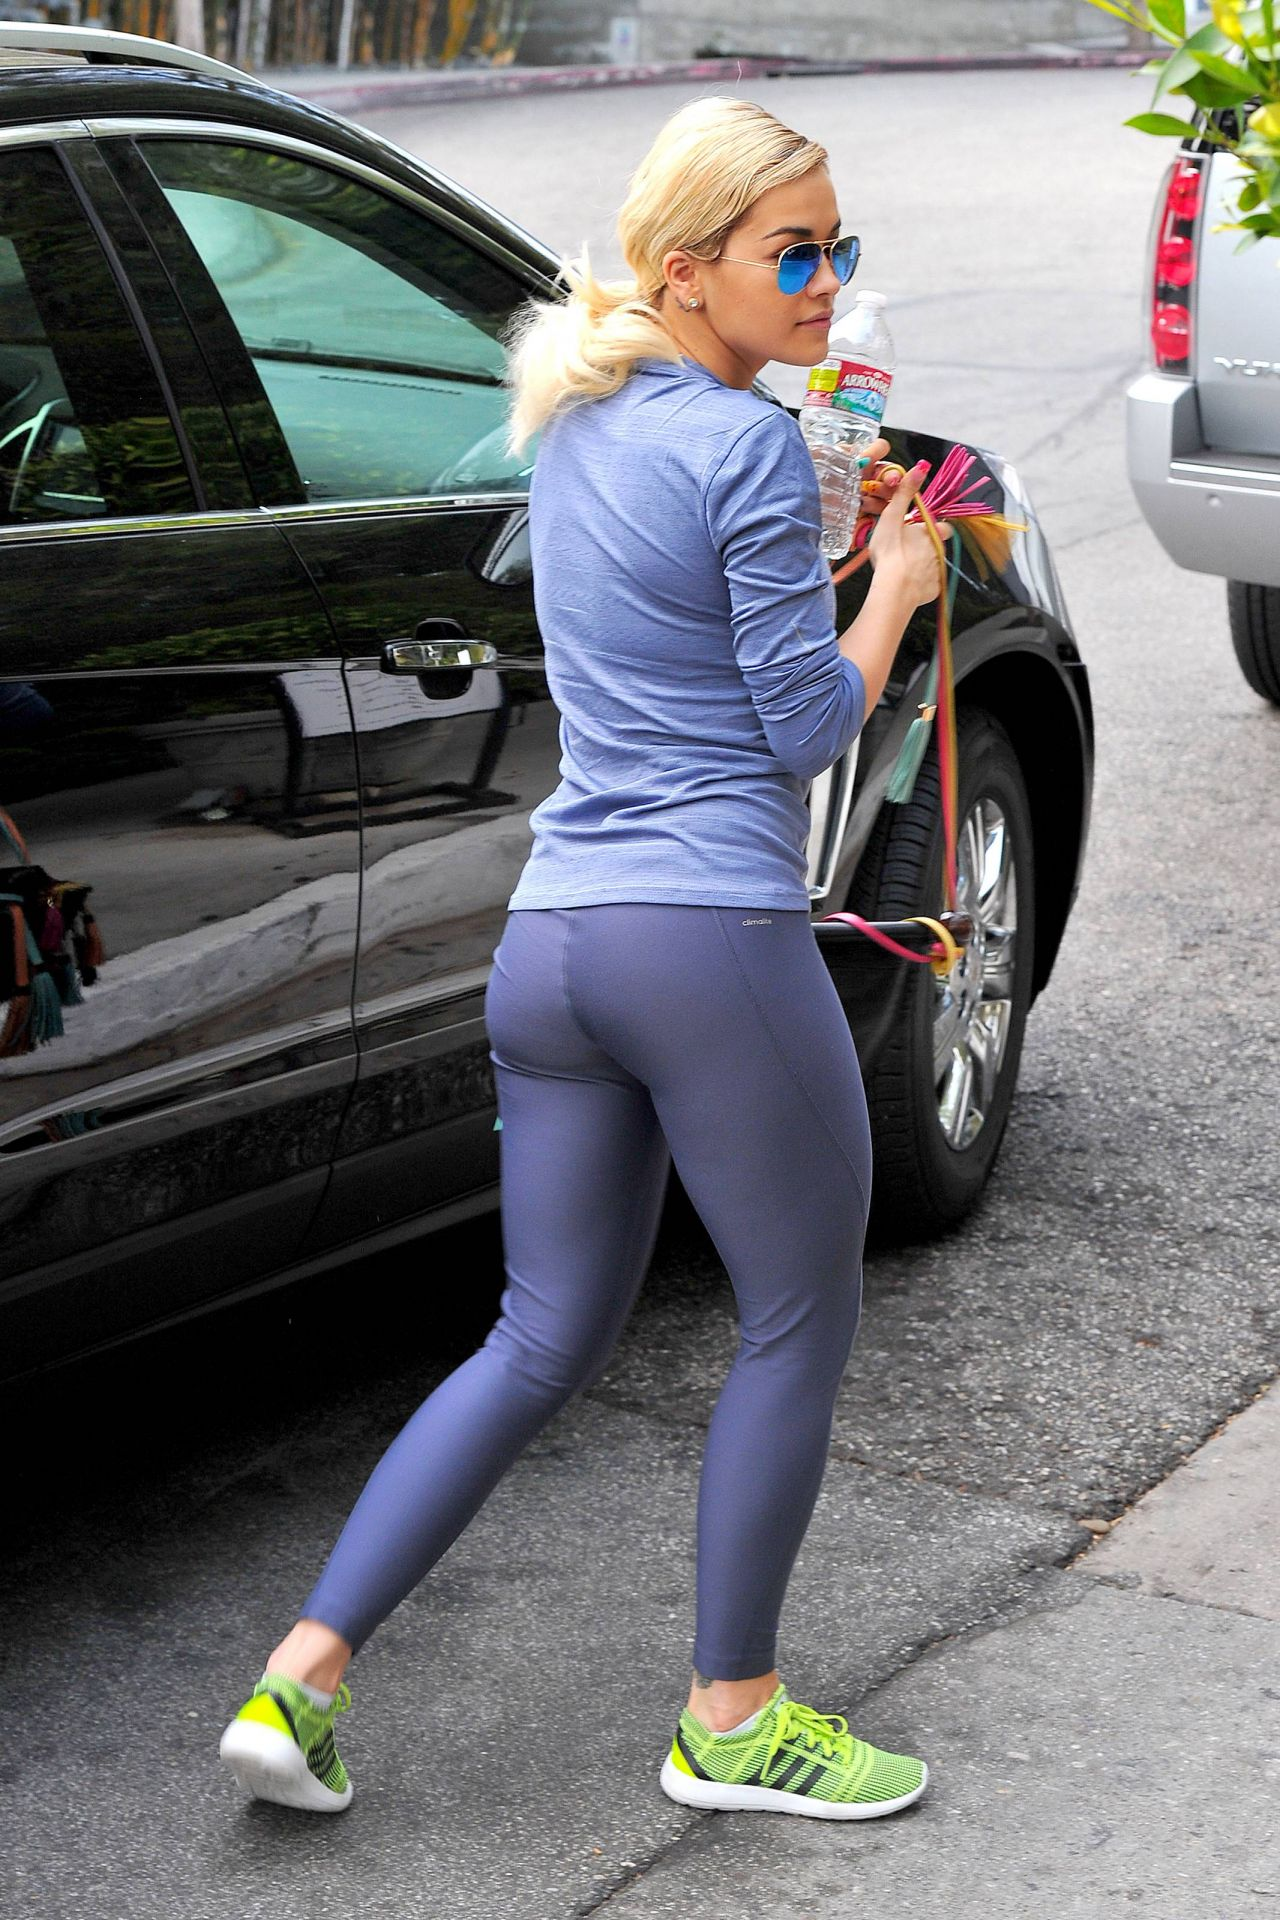 Rita Ora Gym Style - in Spandex out in  Los Angeles - February 2014